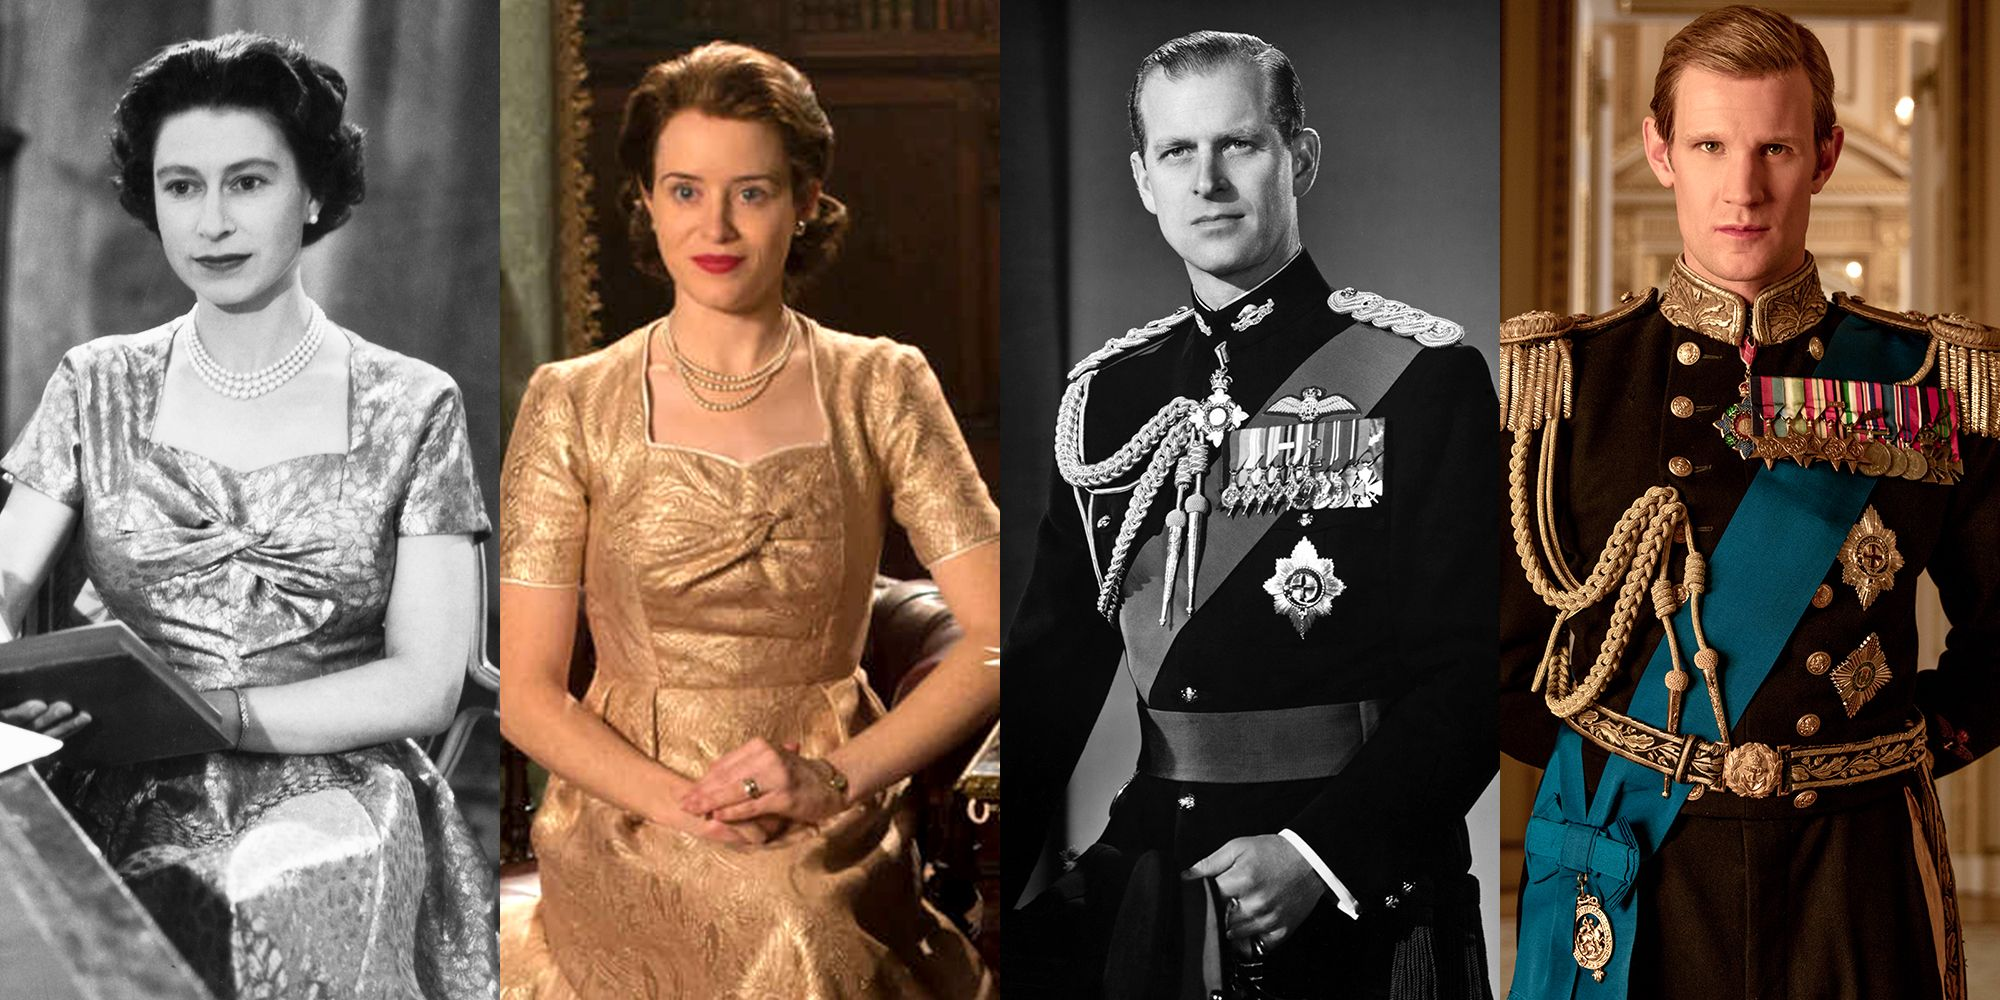 See the Cast of The Crown vs  the People They Play in Real Life